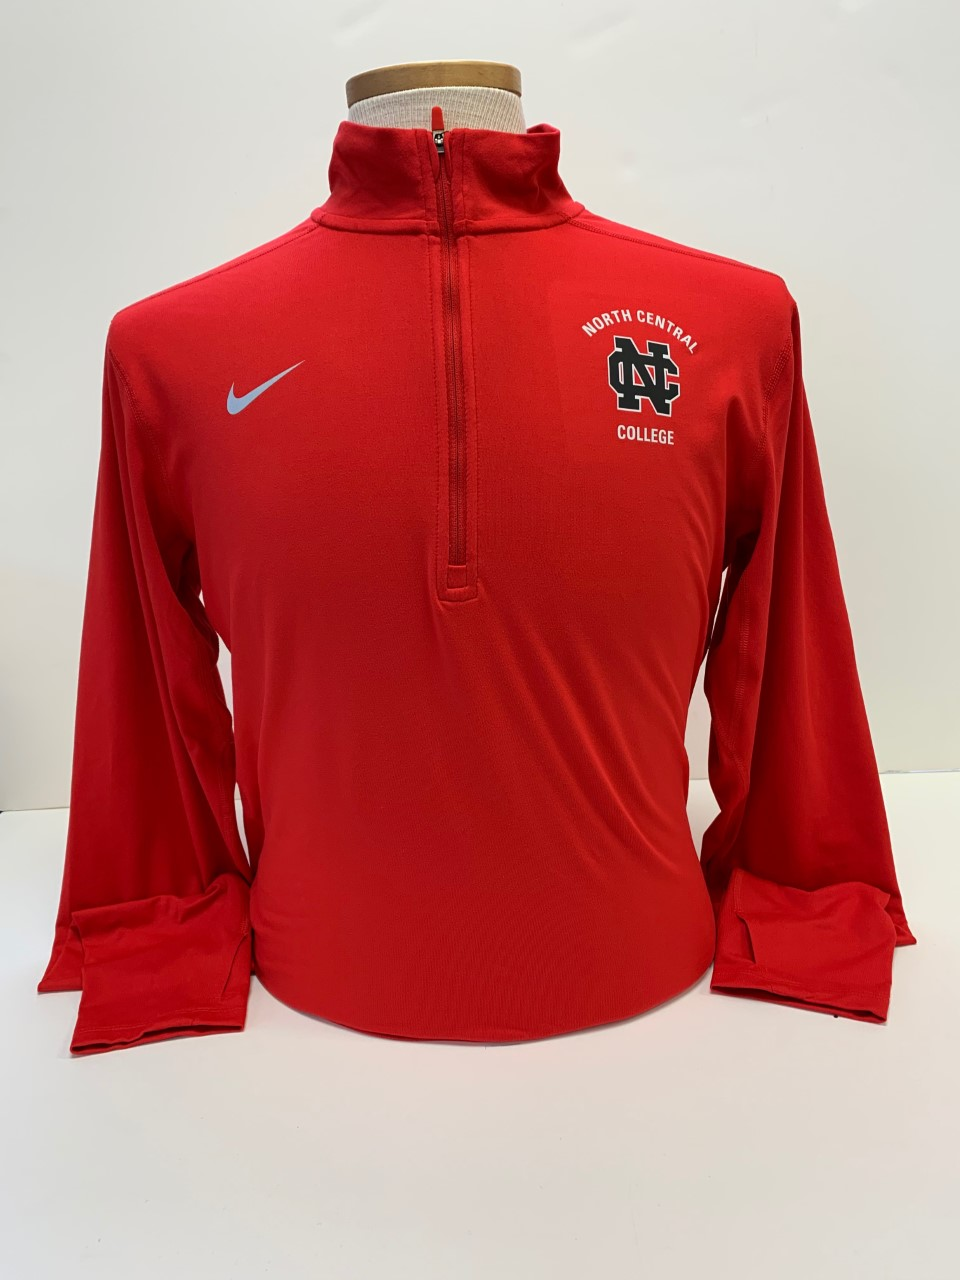 Image for the Nike Solid Element 1/4 Zip Top product